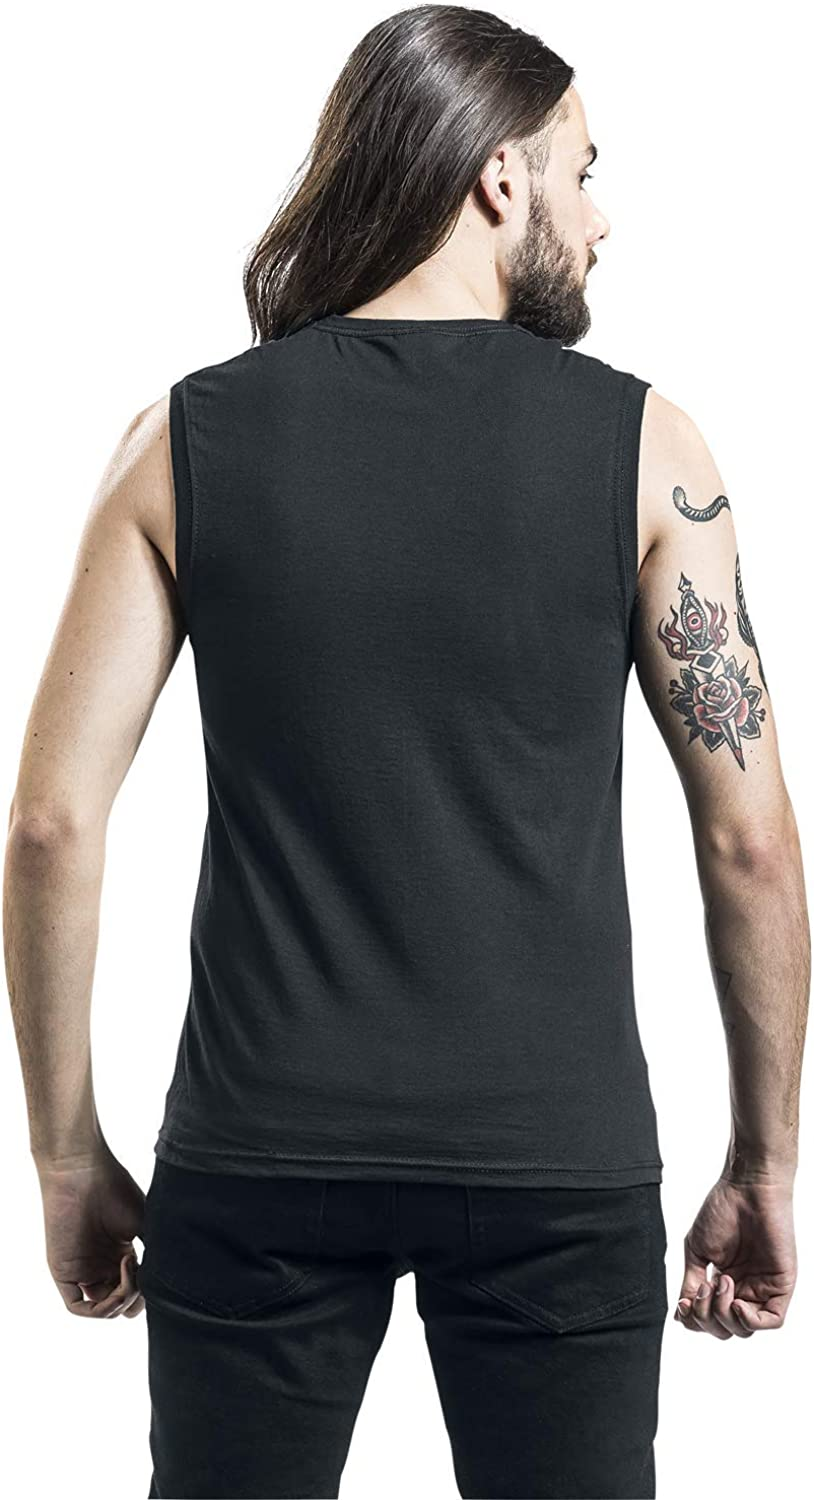 Red Hot Chili Peppers Stencil Asterisk Tanktop Black